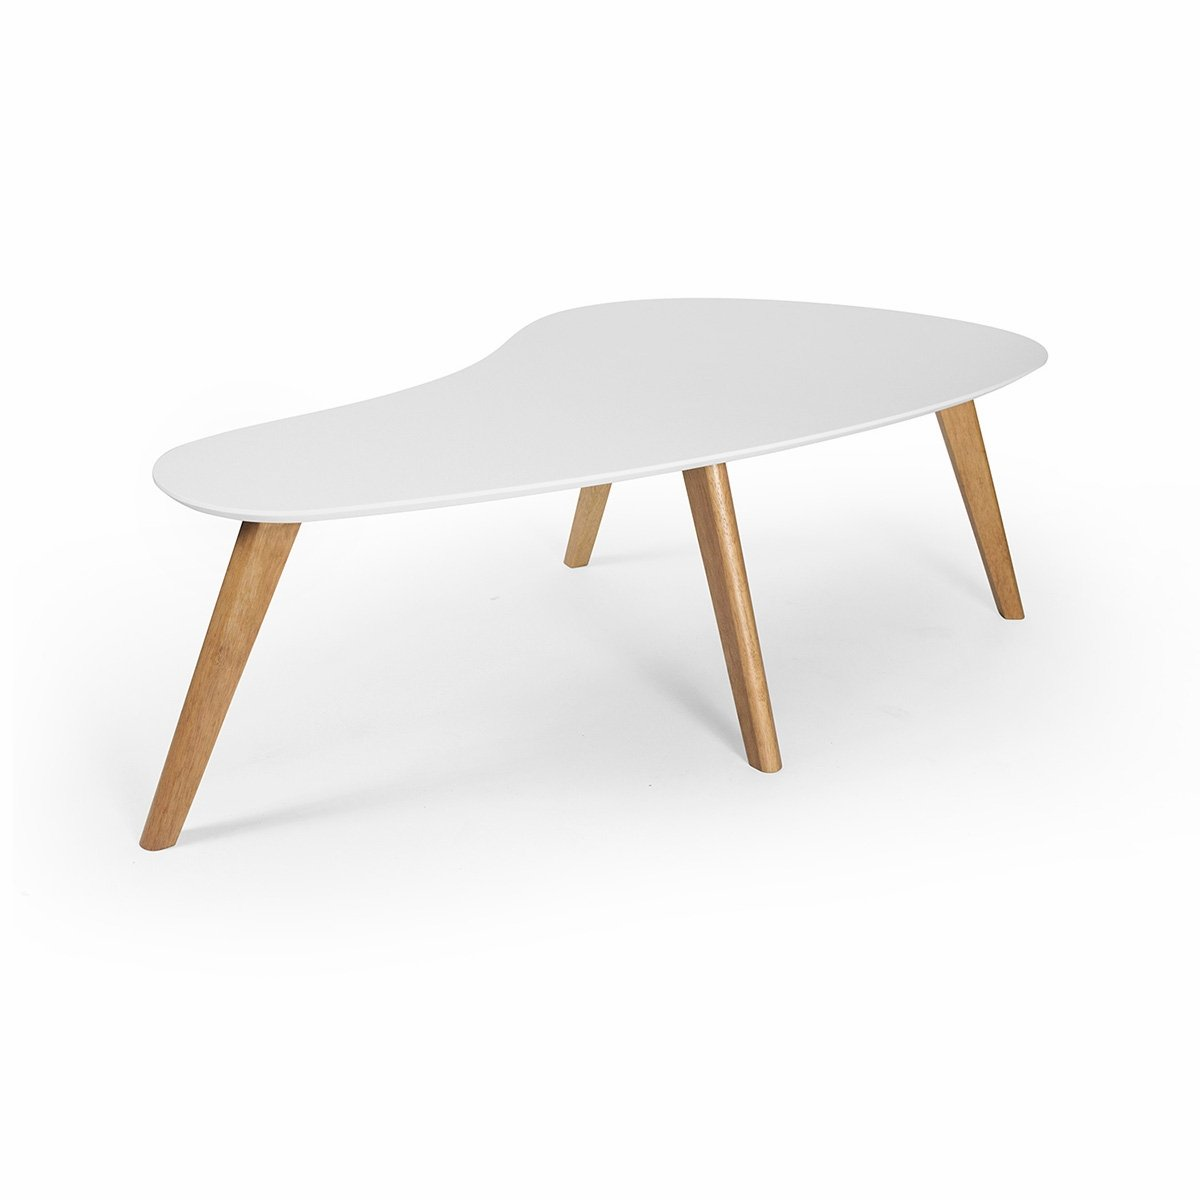 kidney shaped coffee table white kitchen dining accent metal sawhorse legs night outside chairs leick laurent folding and target piece nest tables nautical theme bunnings cushions